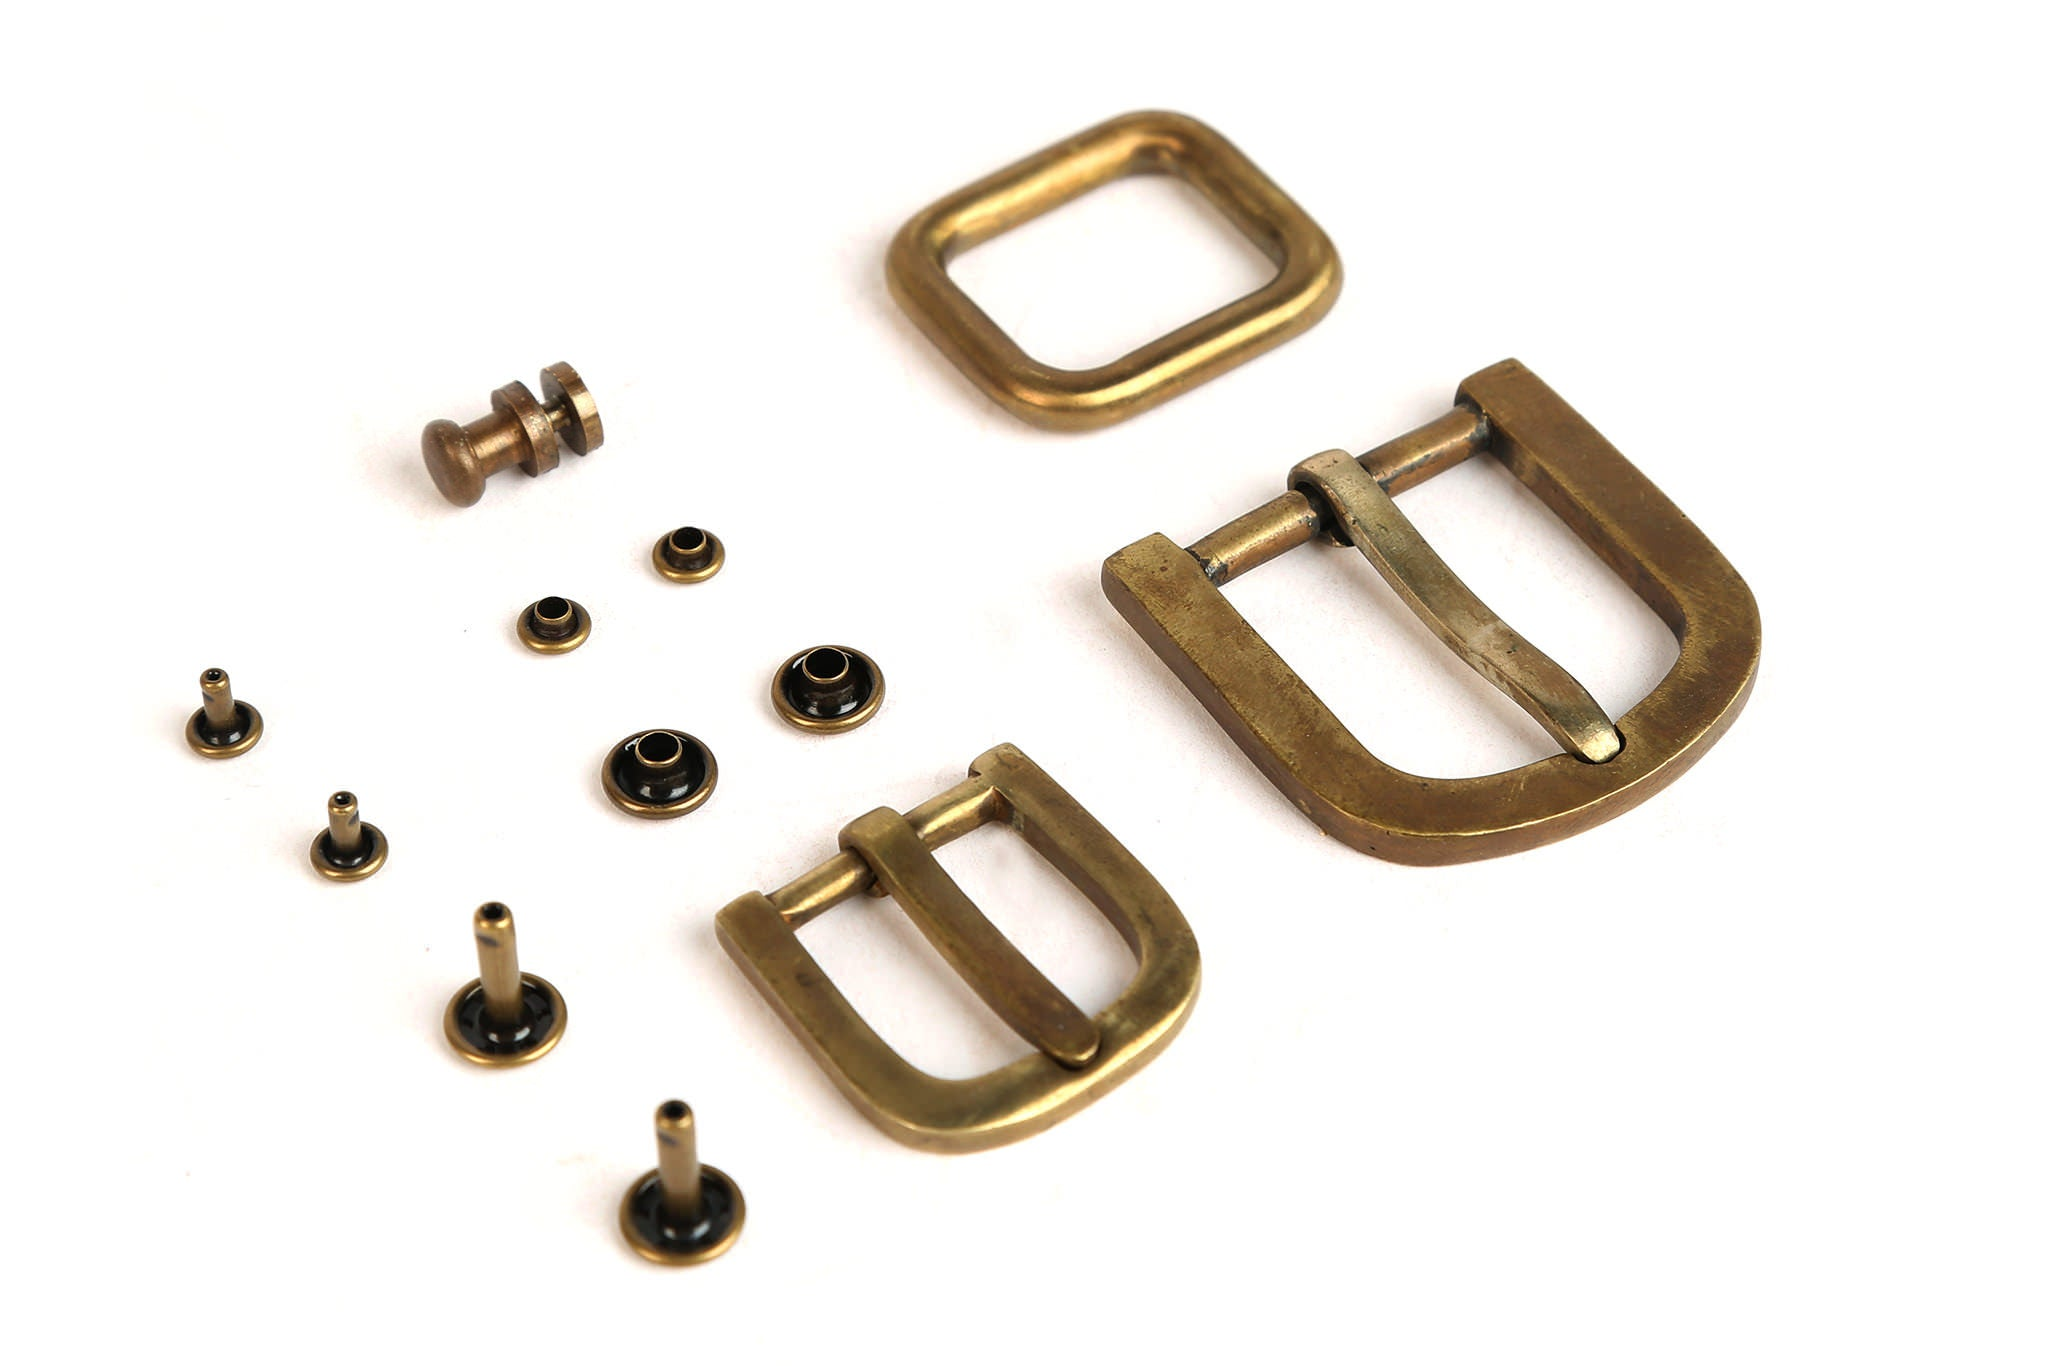 Solid brass accessories with no moving parts,  nothing to break.